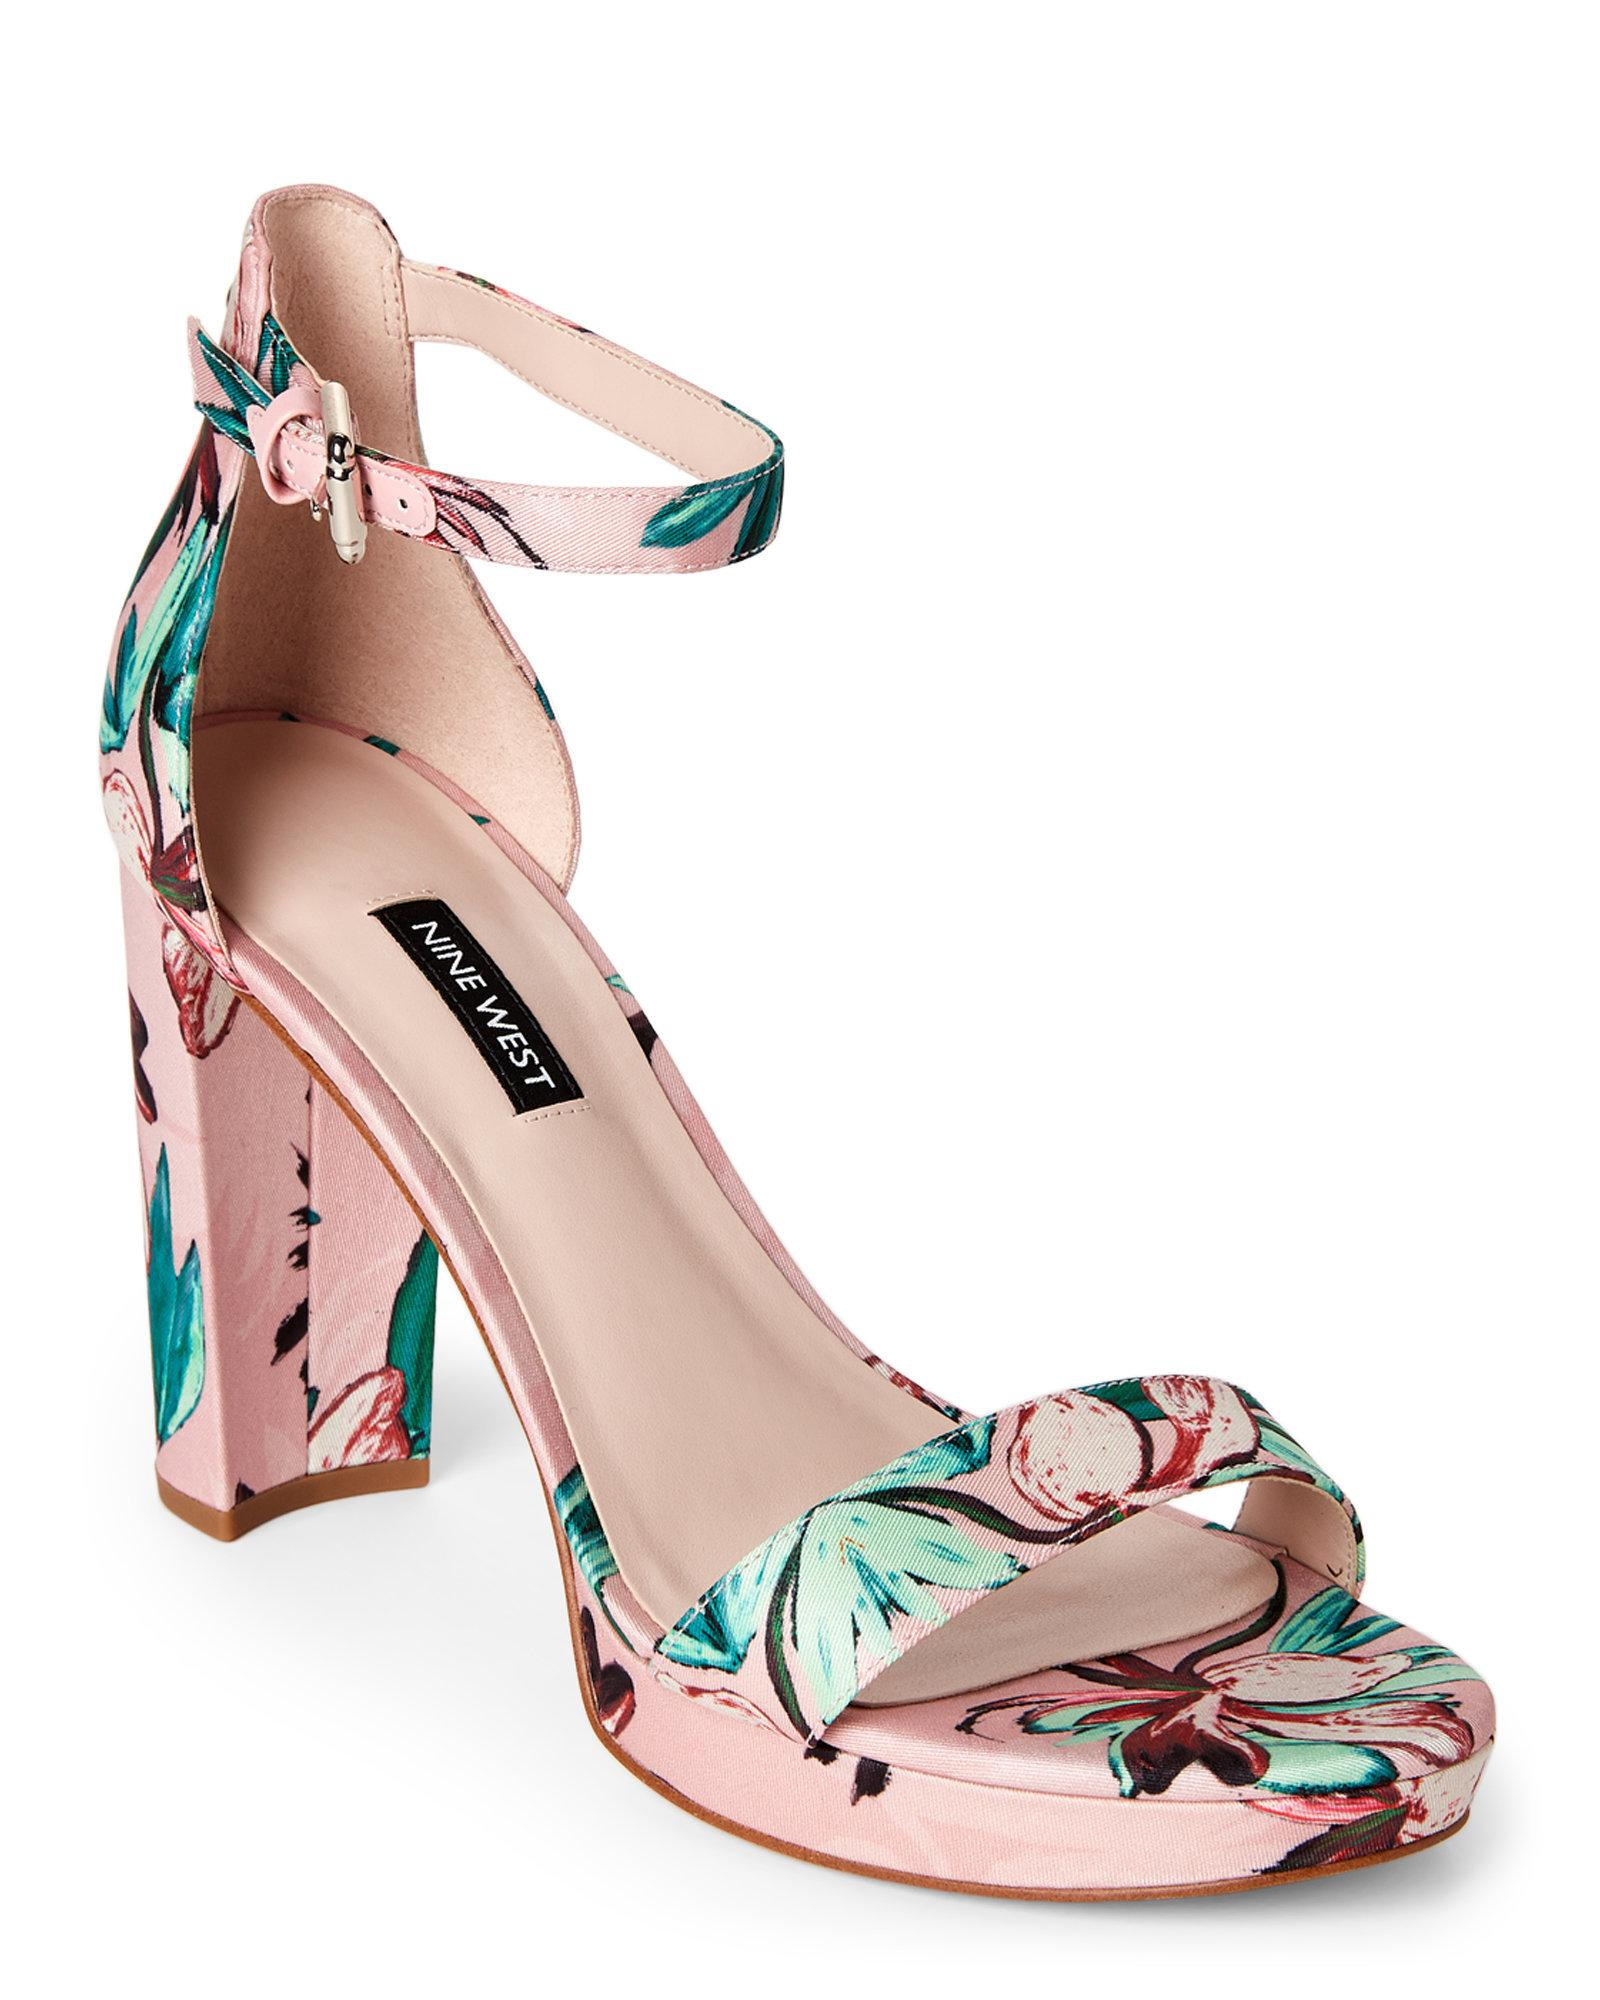 b5b5ae902b4cc8 Lyst - Nine West Pink Dempsey Floral Satin Block Heel Sandals in Pink